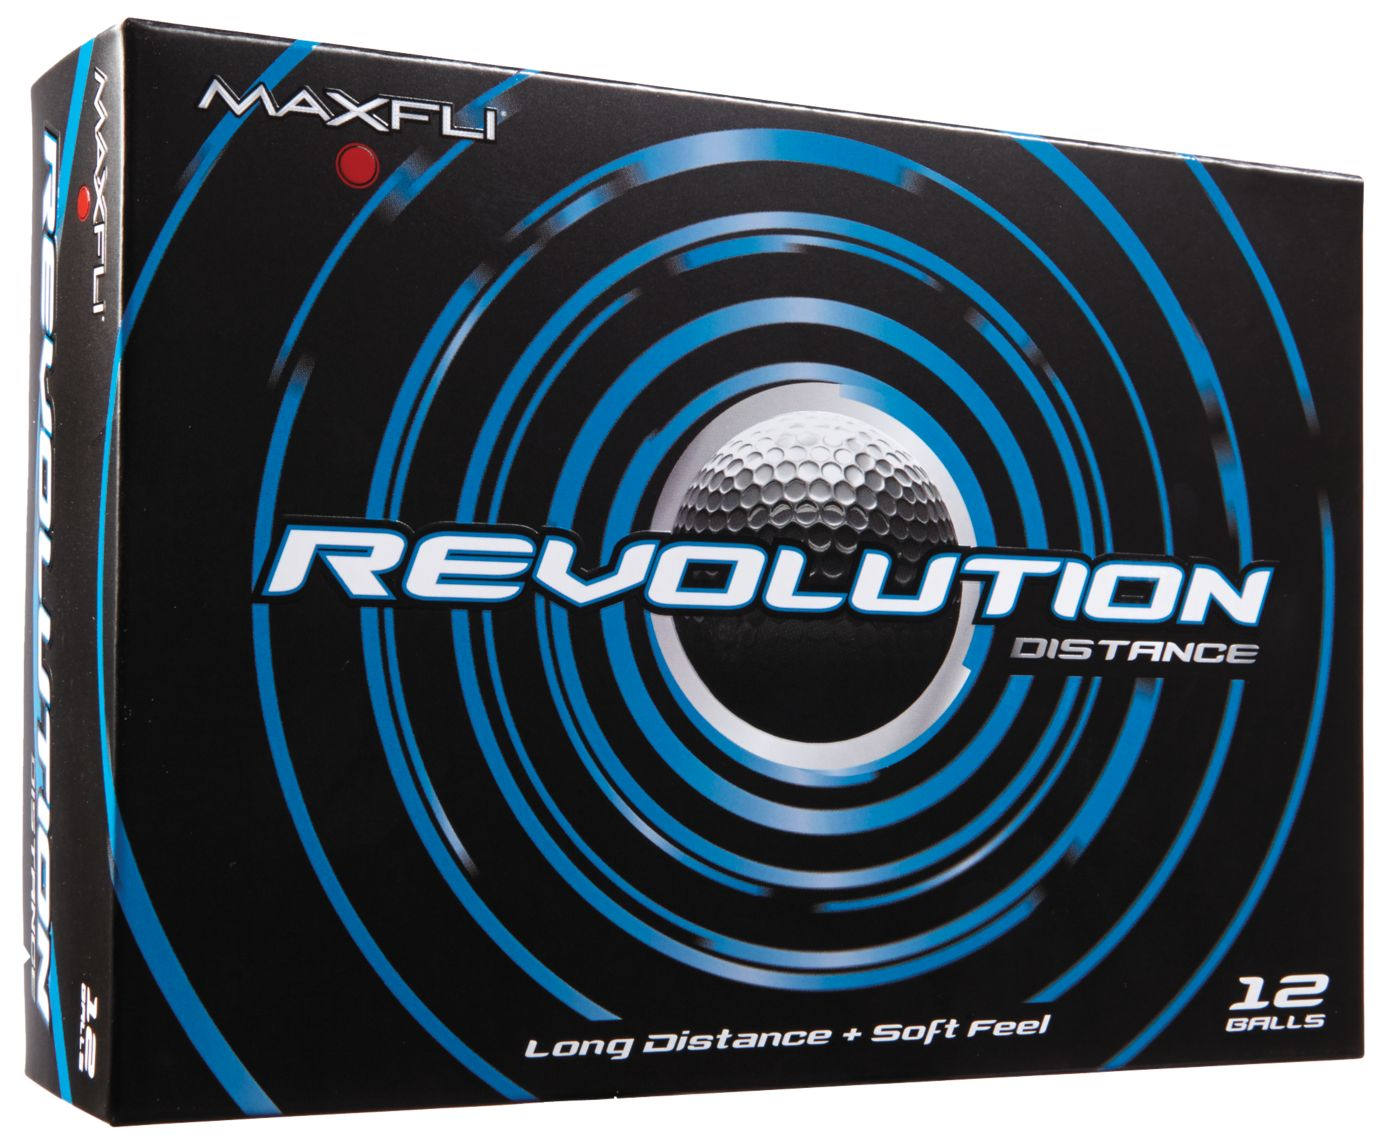 Maxfli Revolution Distance Personalized Golf Balls